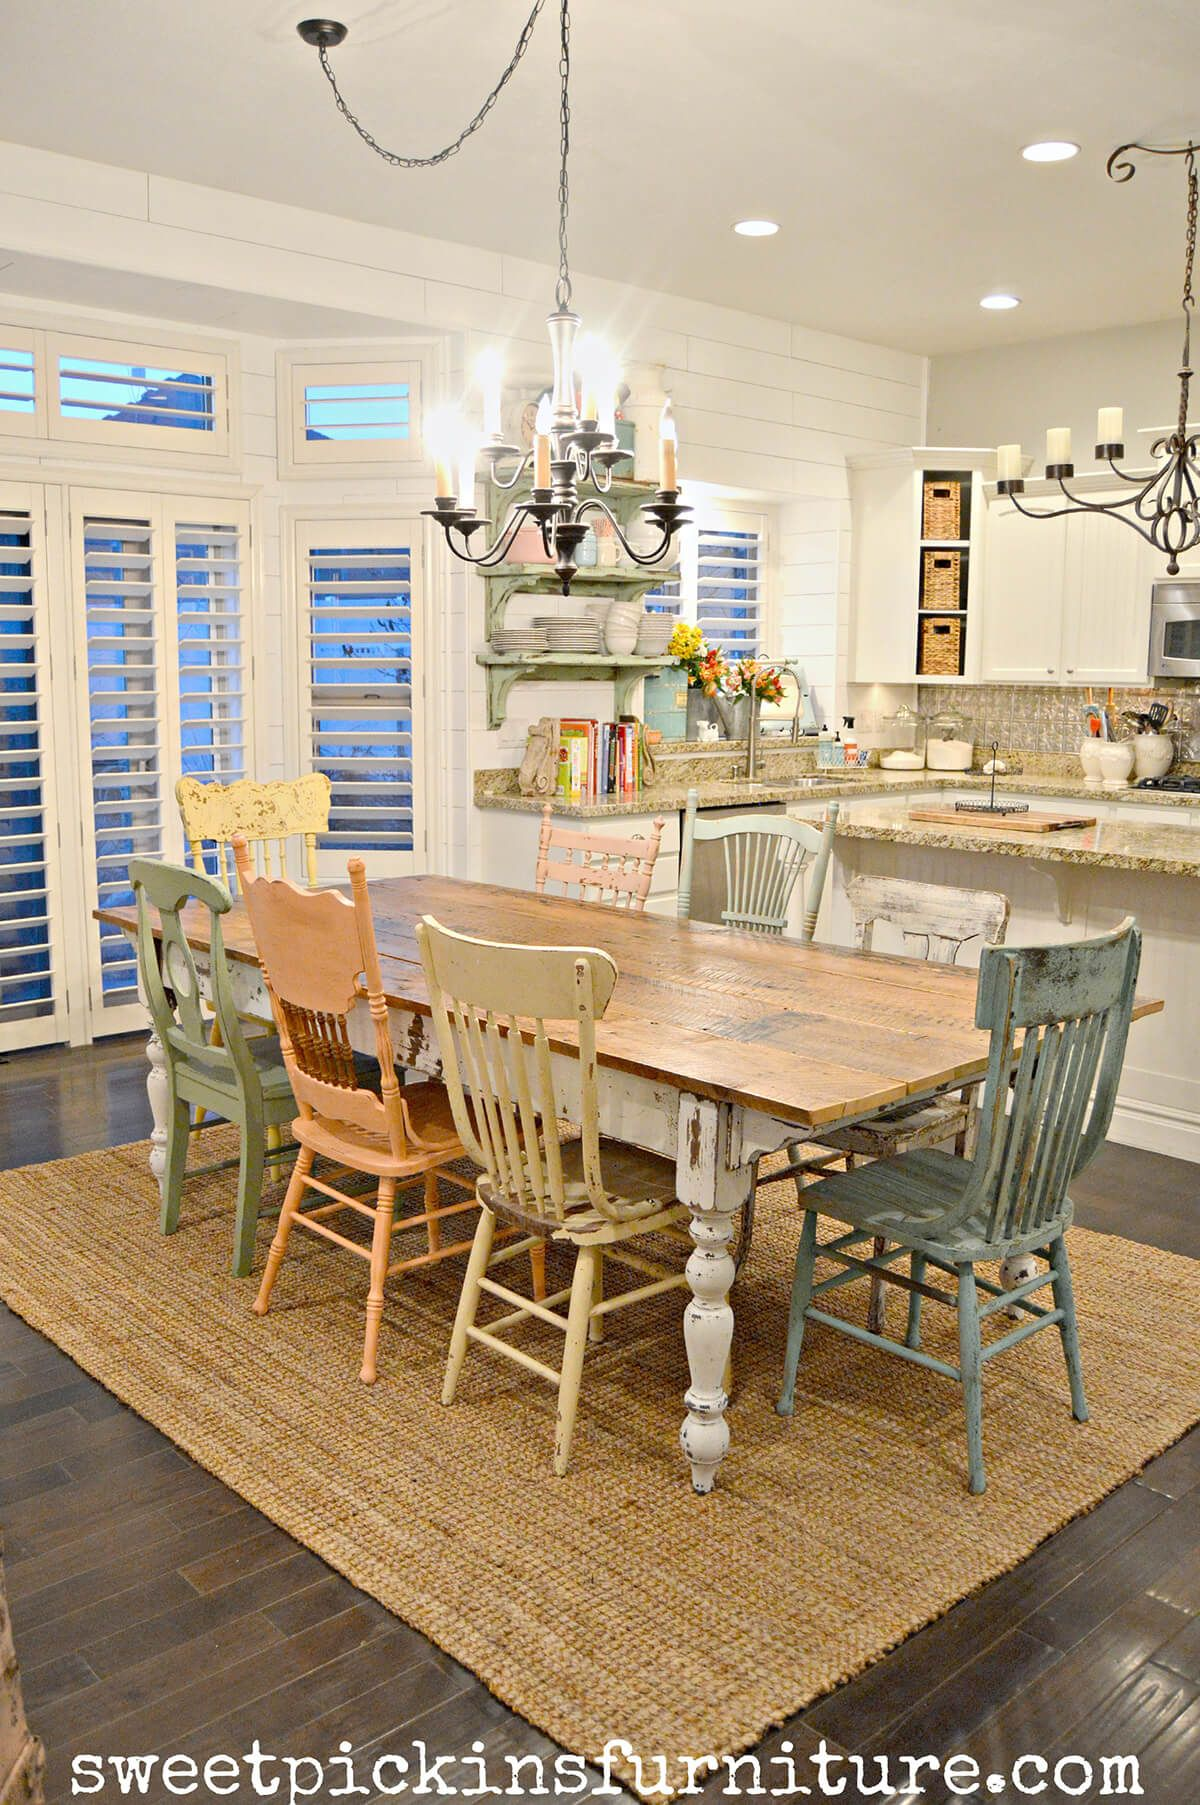 37 Timeless Farmhouse Dining Room Design Ideas That Are Simply Adorable Farm Style Dining Room Table Inspiration Design